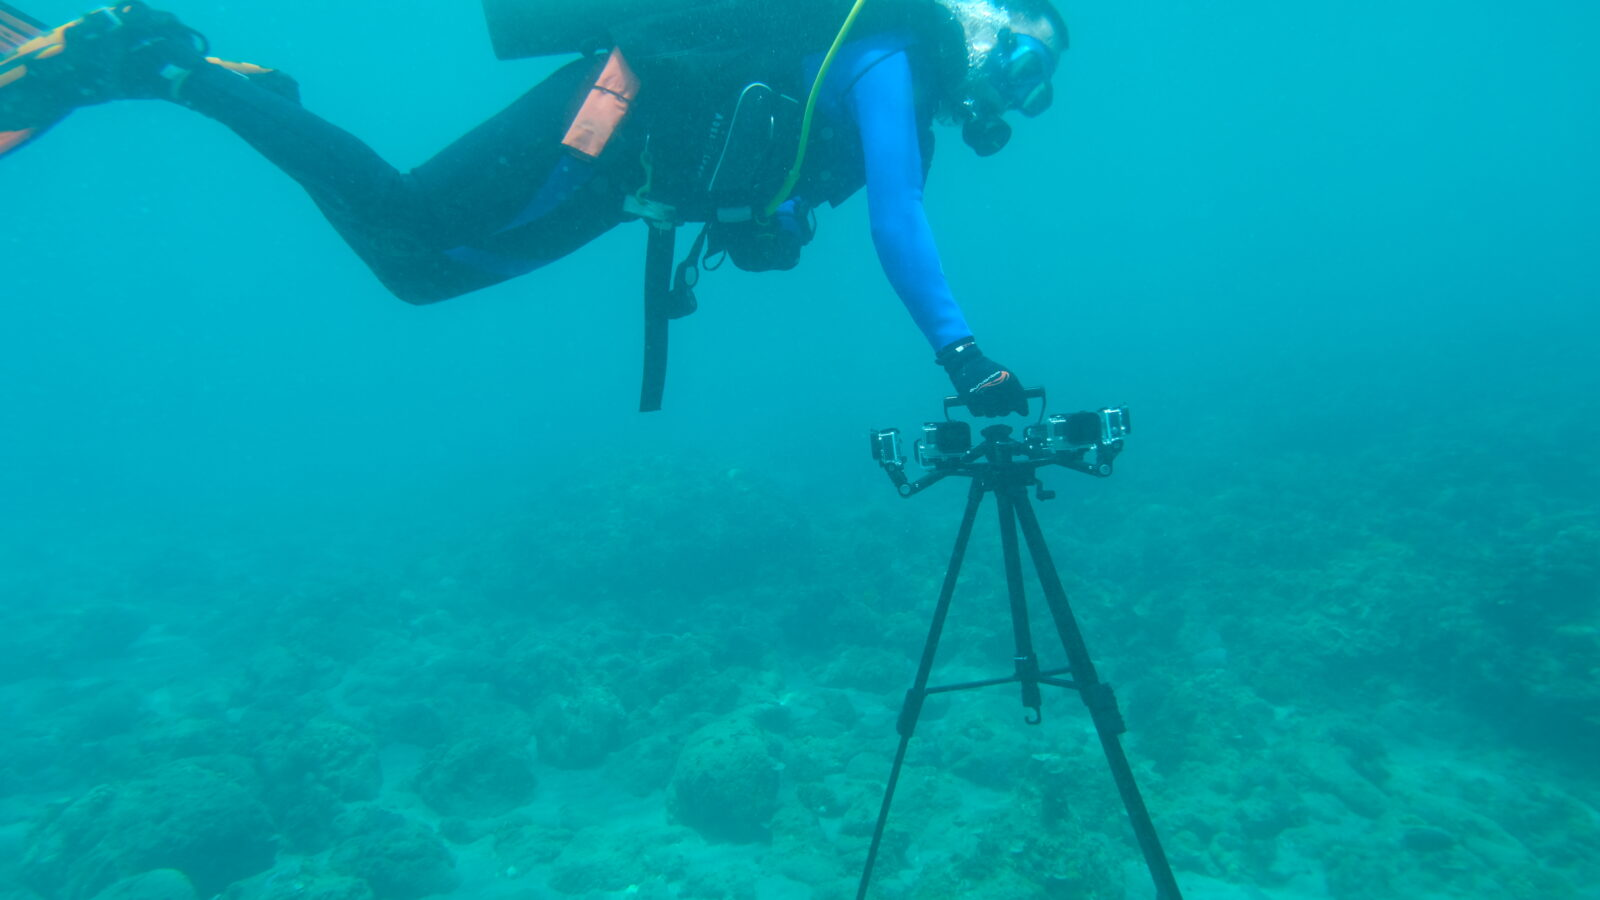 Setting up of Fish-I camera system within the area of study